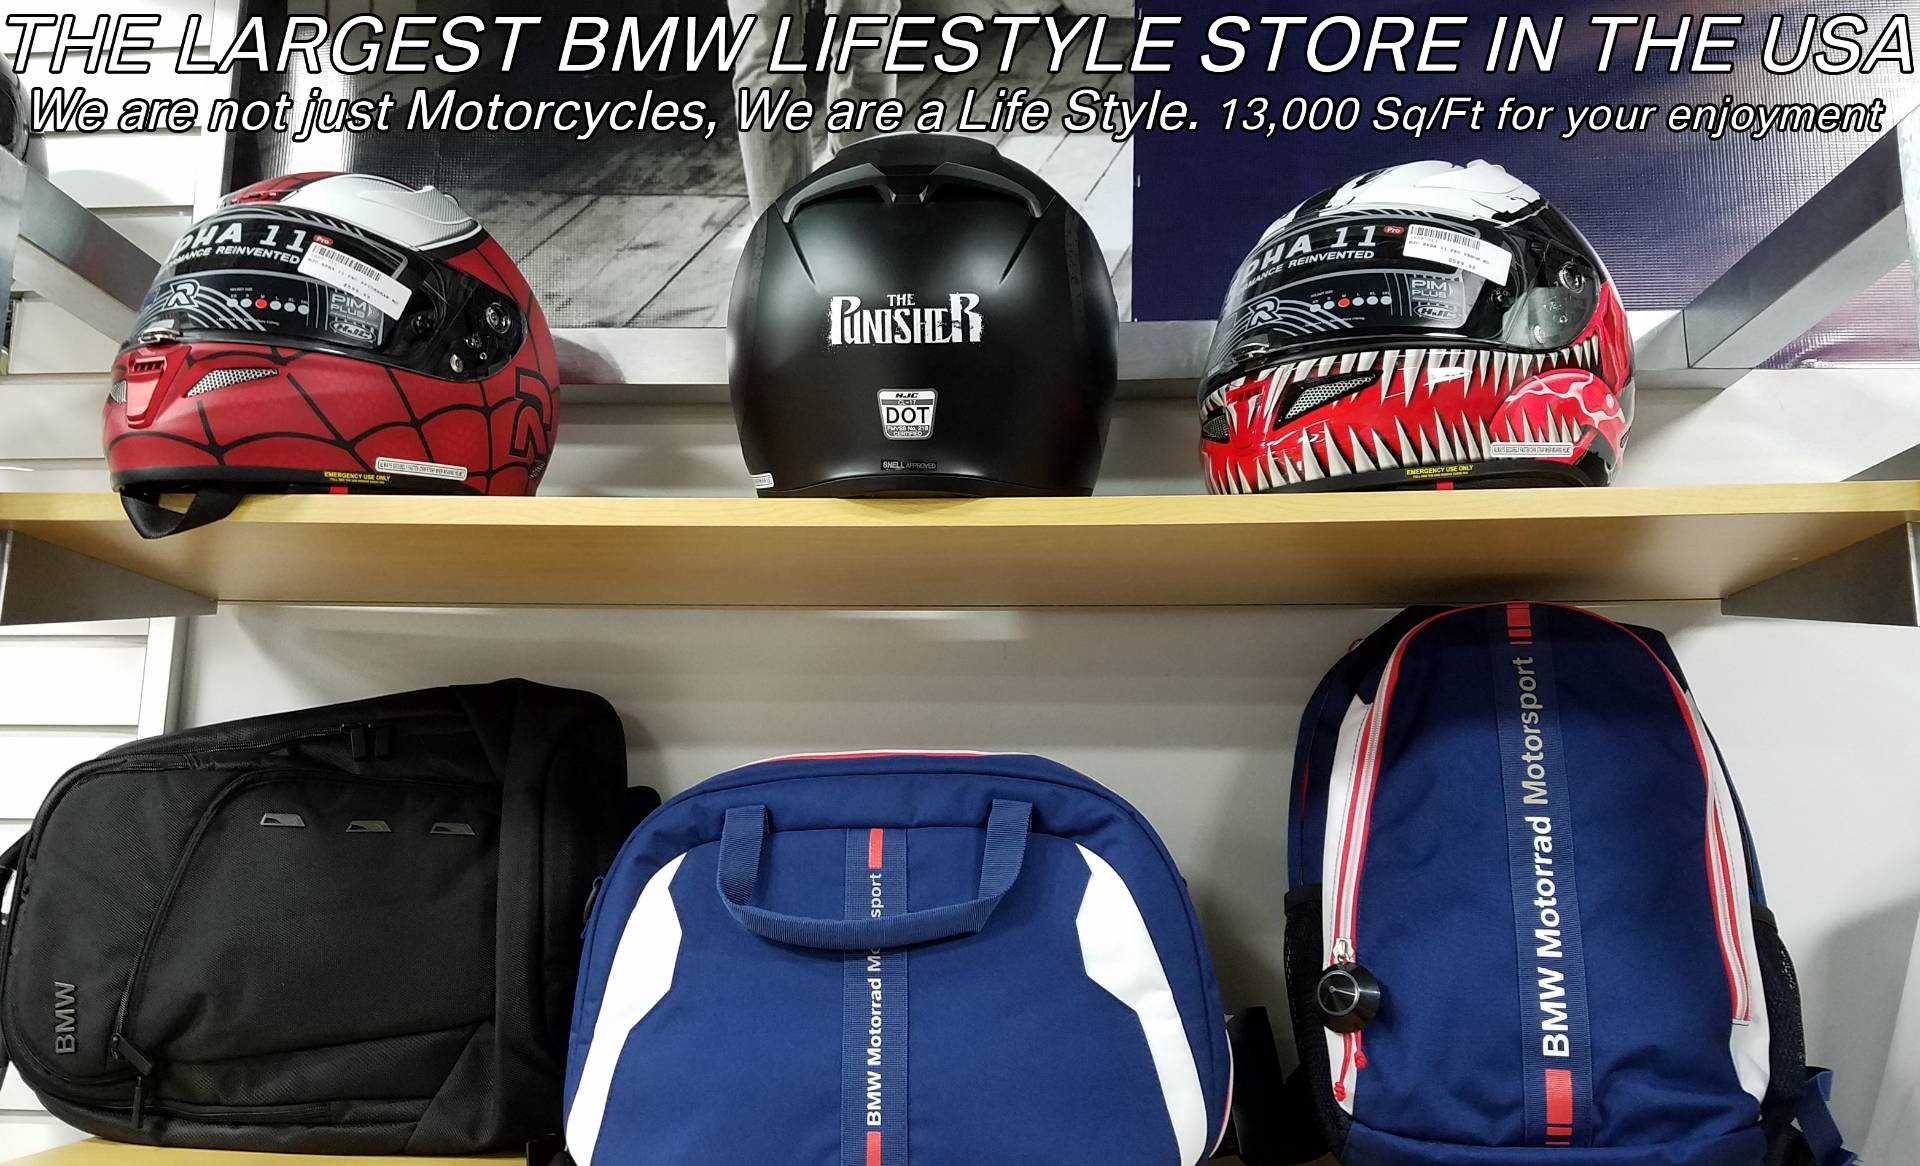 New 2019 BMW R 1250 GSA for sale, BMW for sale R 1250GSA, BMW Motorcycle R1250GSA, new BMW 1250GS Adventure, R1250GSAdventure, BMW Adventure, BMW Motorcycles of Miami, Motorcycles of Miami - Photo 45